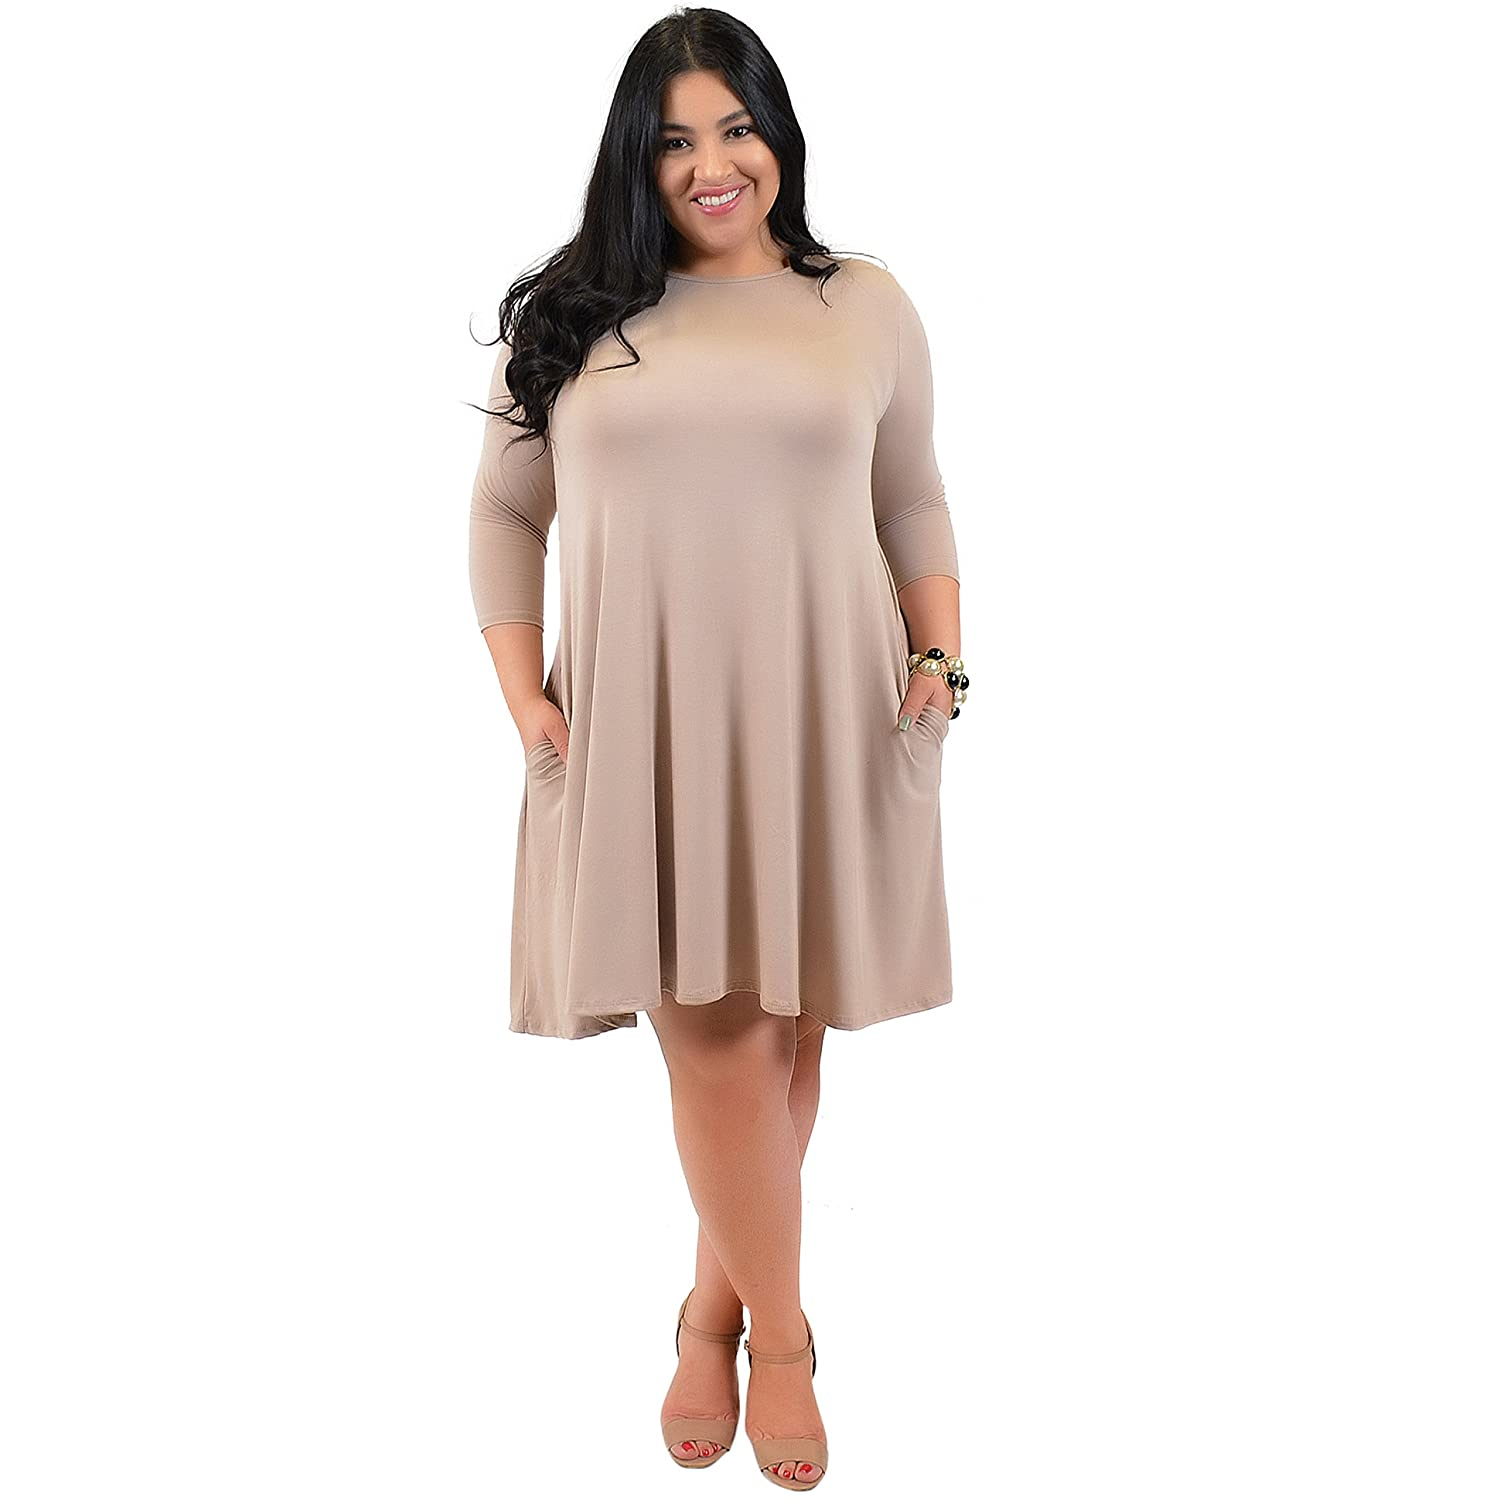 0979eb1d826 Stretch is Comfort Women s Plus Size ¾ Sleeve Pocket Flowy Trapeze Tunic  Dress